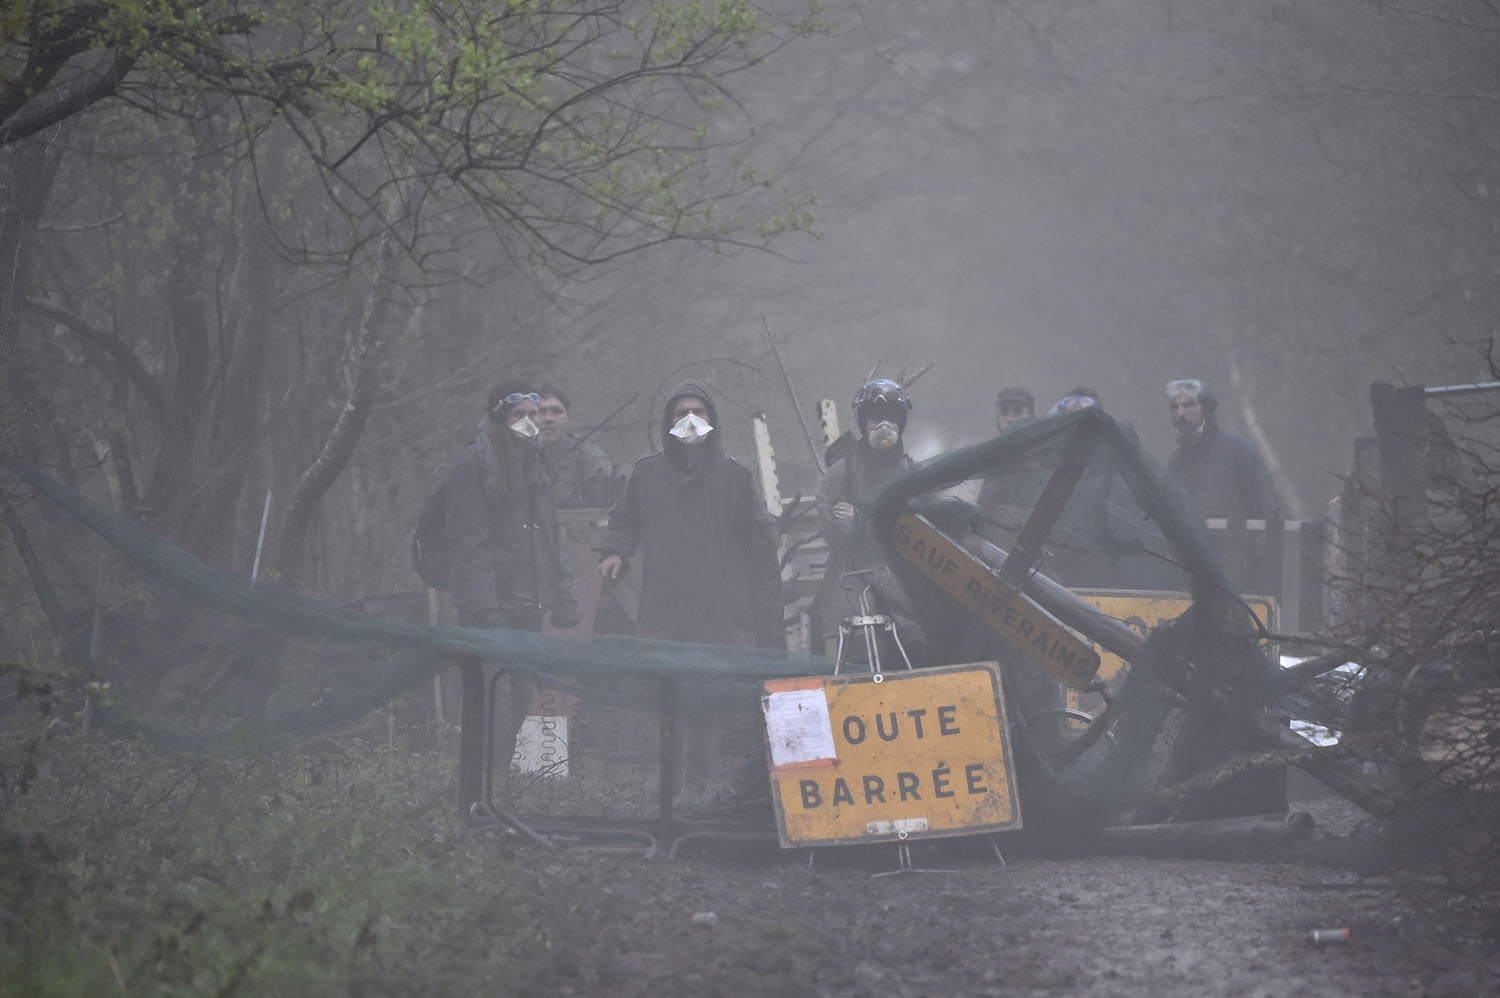 Protesters set up a barricade to block a path during an operation to clear an area known as ZAD (Zone a Defendre - Zone to defend) of environmental protesters occupying the site of what had been a proposed new airport in Notre dame des Landes on April 10,